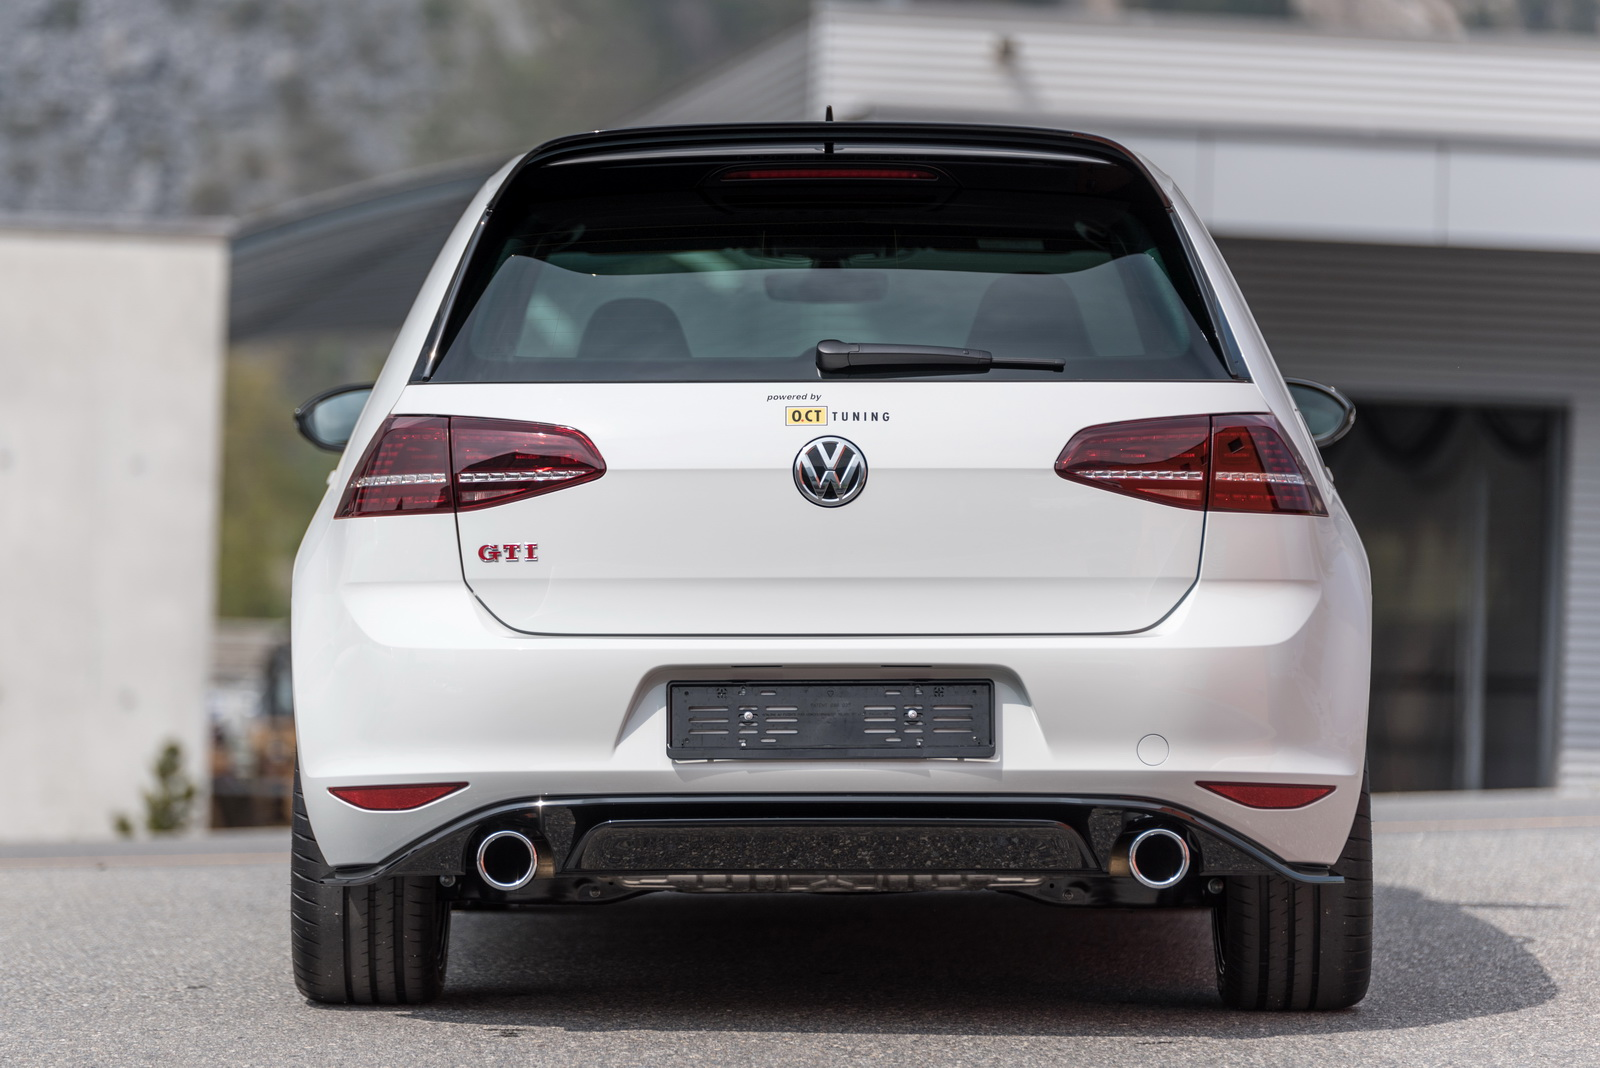 VW_Golf_GTI_Clubsport_S_by)O.CT_Tuning_04